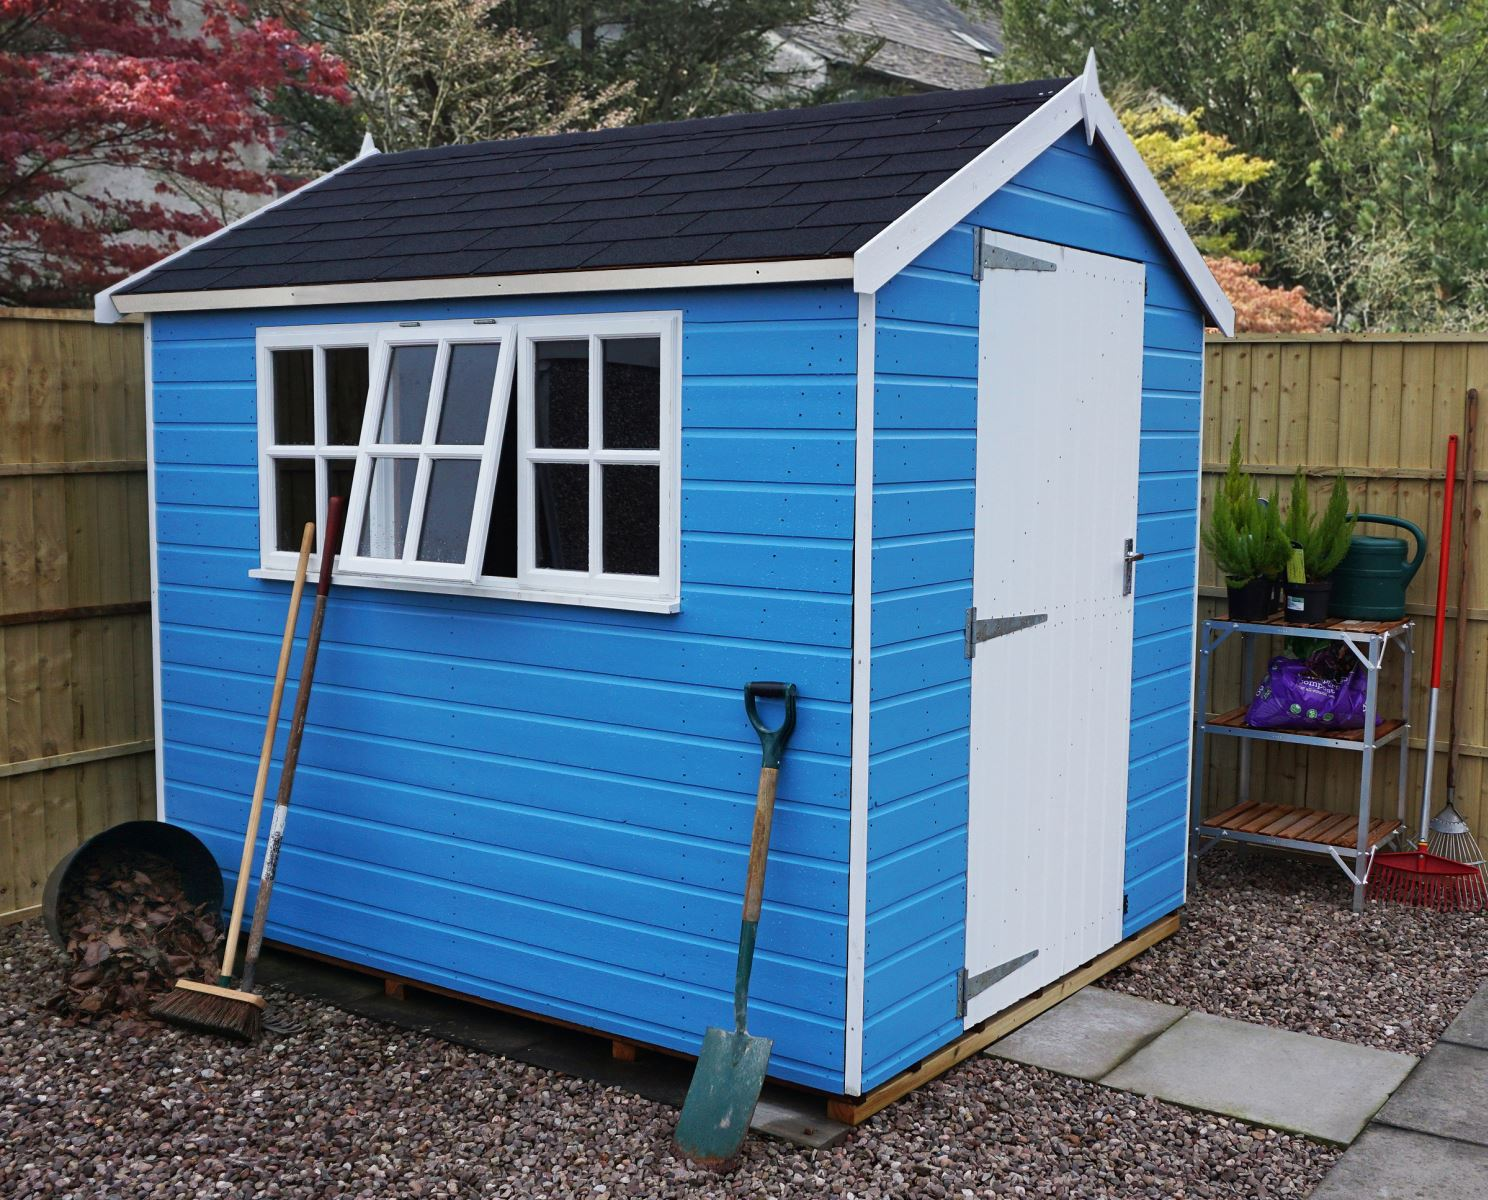 How to Supply Electricity to Your Shed